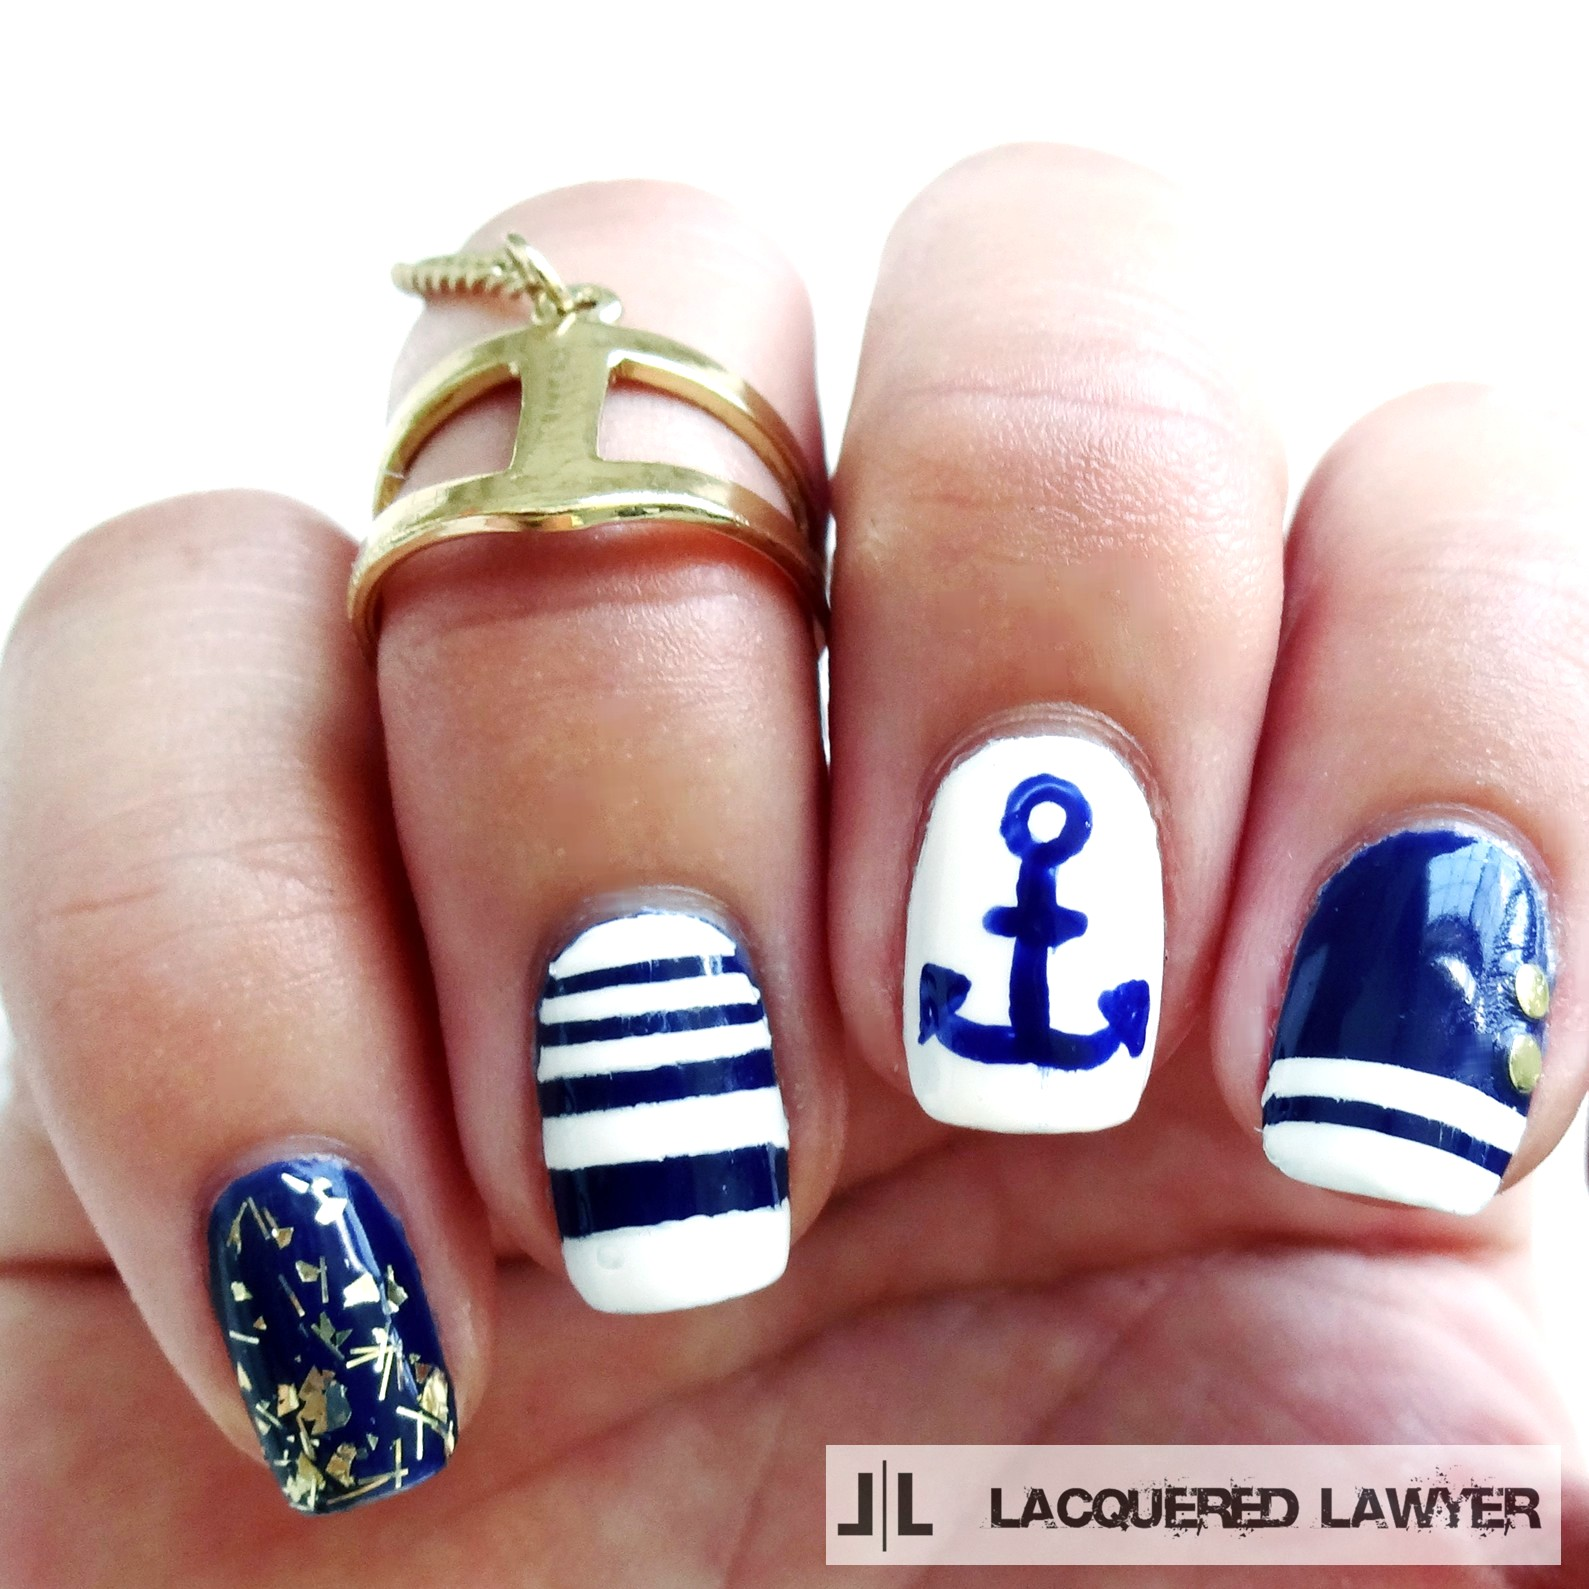 Lacquered Lawyer | Nail Art Blog: August 2014